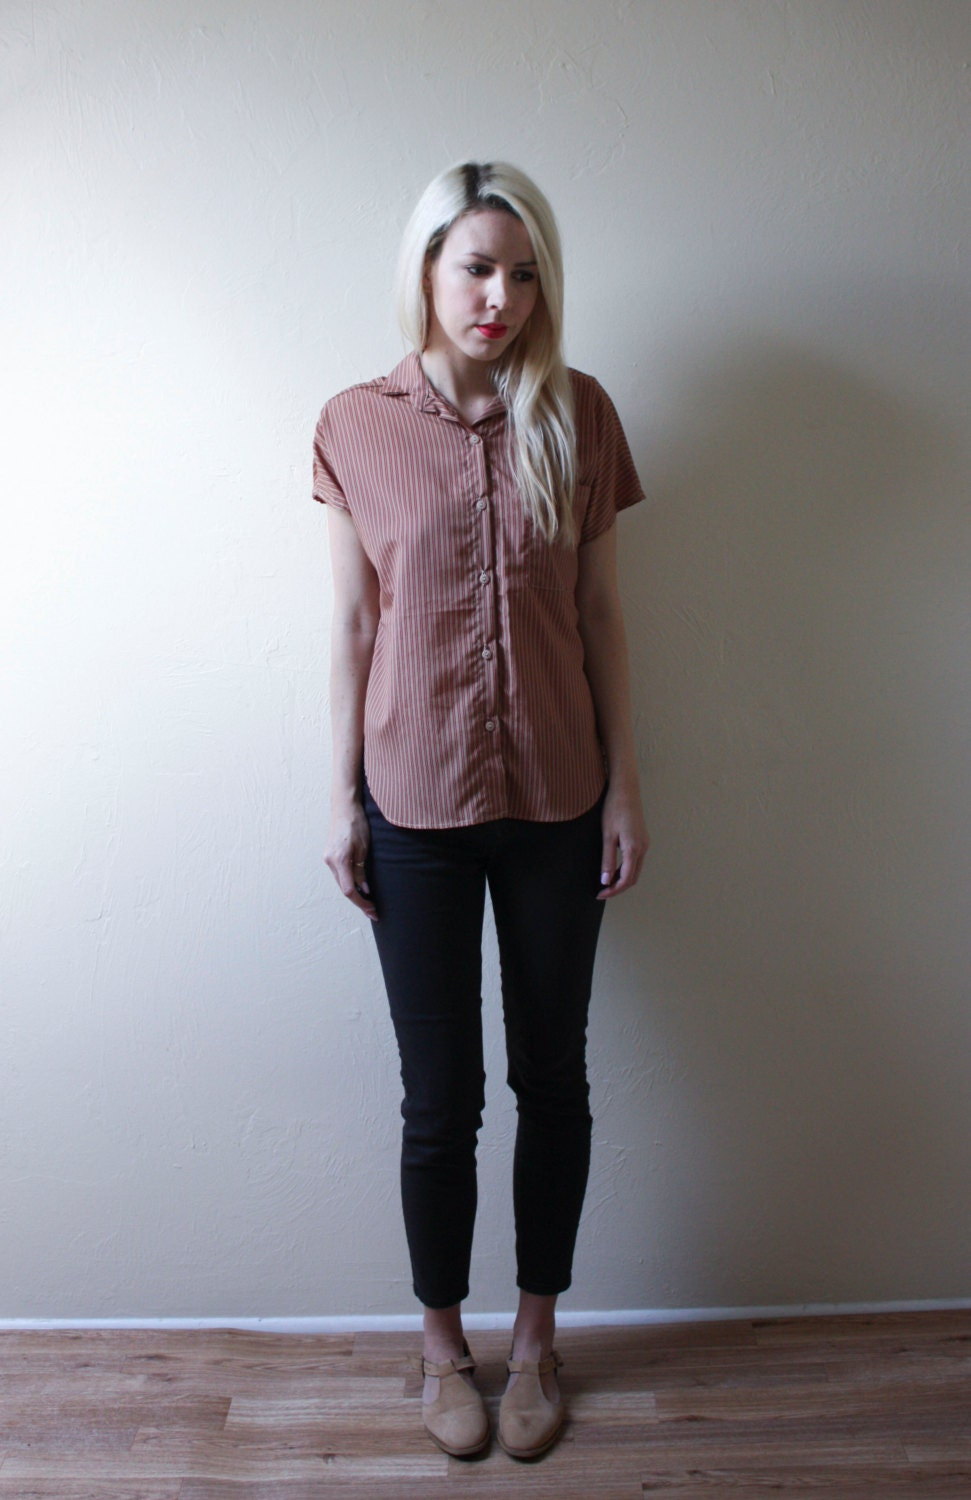 SALE: Tan and Red Striped Cap Sleeve Button Up Top with Pocket // Shirt // Blouse